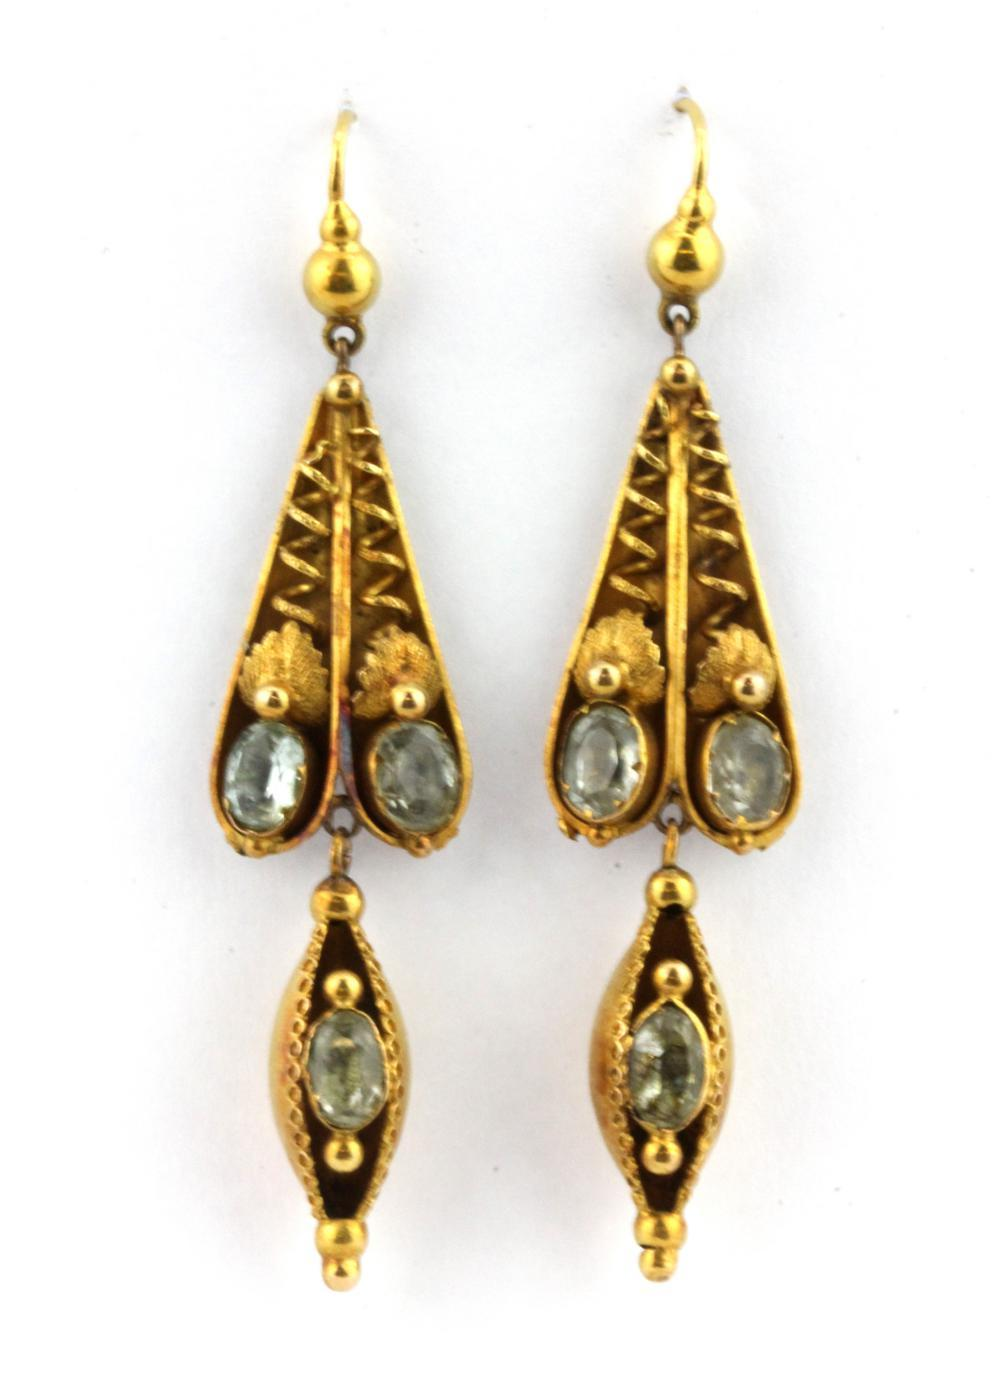 A pair of Victorian yellow metal (tested high carat gold) stone set earrings in an antique box., L. 6cm.